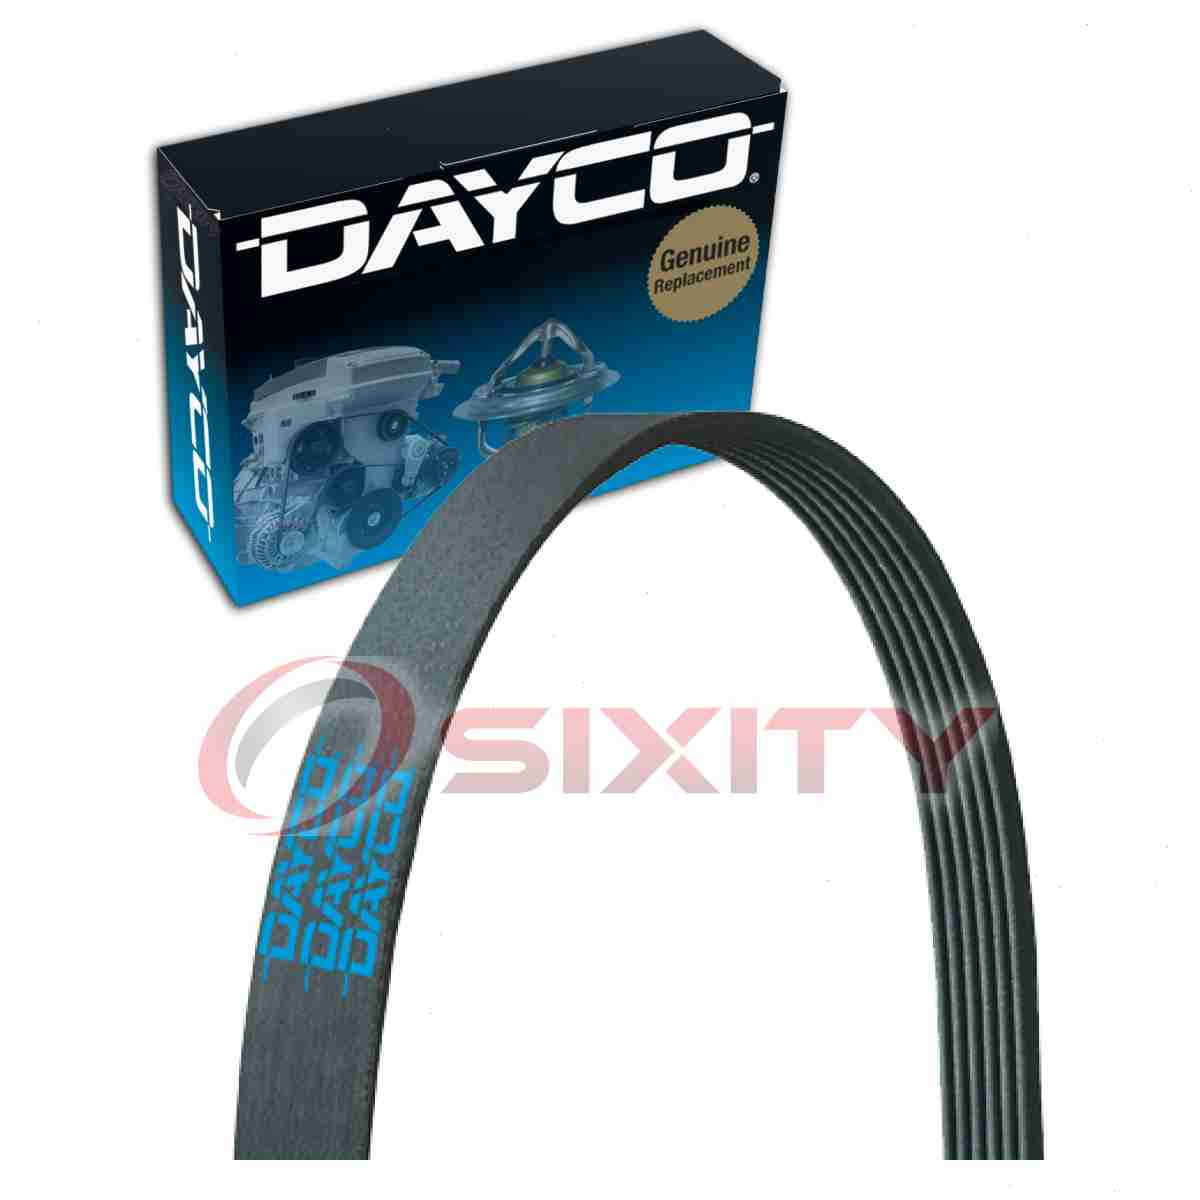 Dayco Serpentine Belt For 1999 2004 Chrysler 300m 3 5l V6 V Belt 99 Jeep  Wrangler Belt Diagram 99 Chrysler 300m Belt Diagram